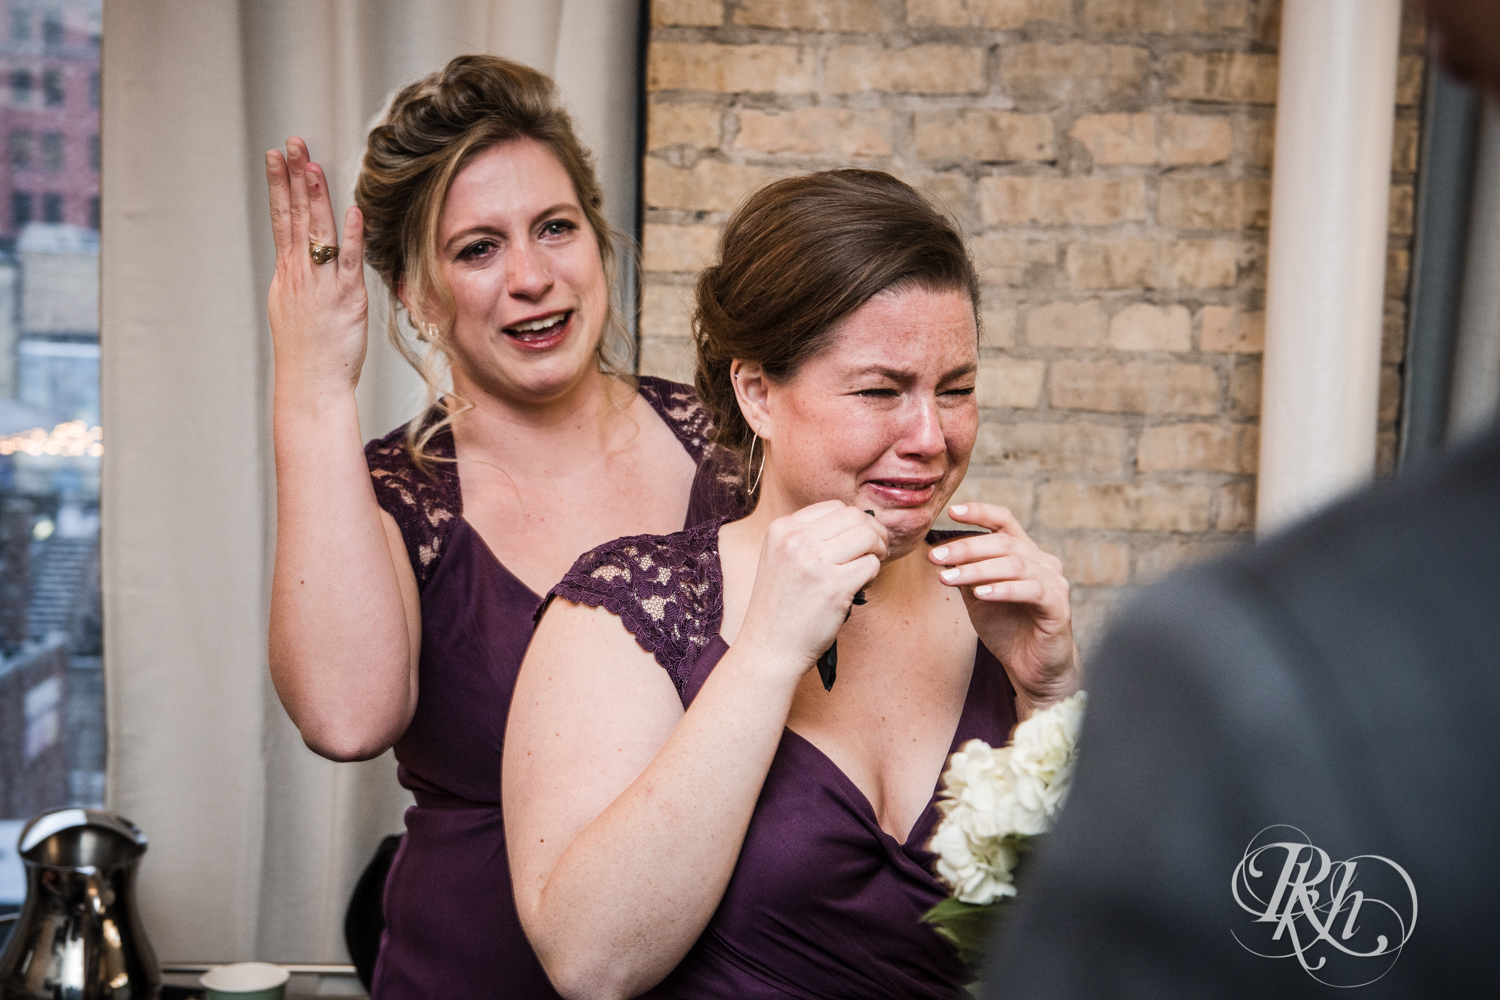 Jillian & Jared - Minnesota Wedding Photography - Lumber Exchange Event Center - RKH Images - Blog (49 of 87).jpg